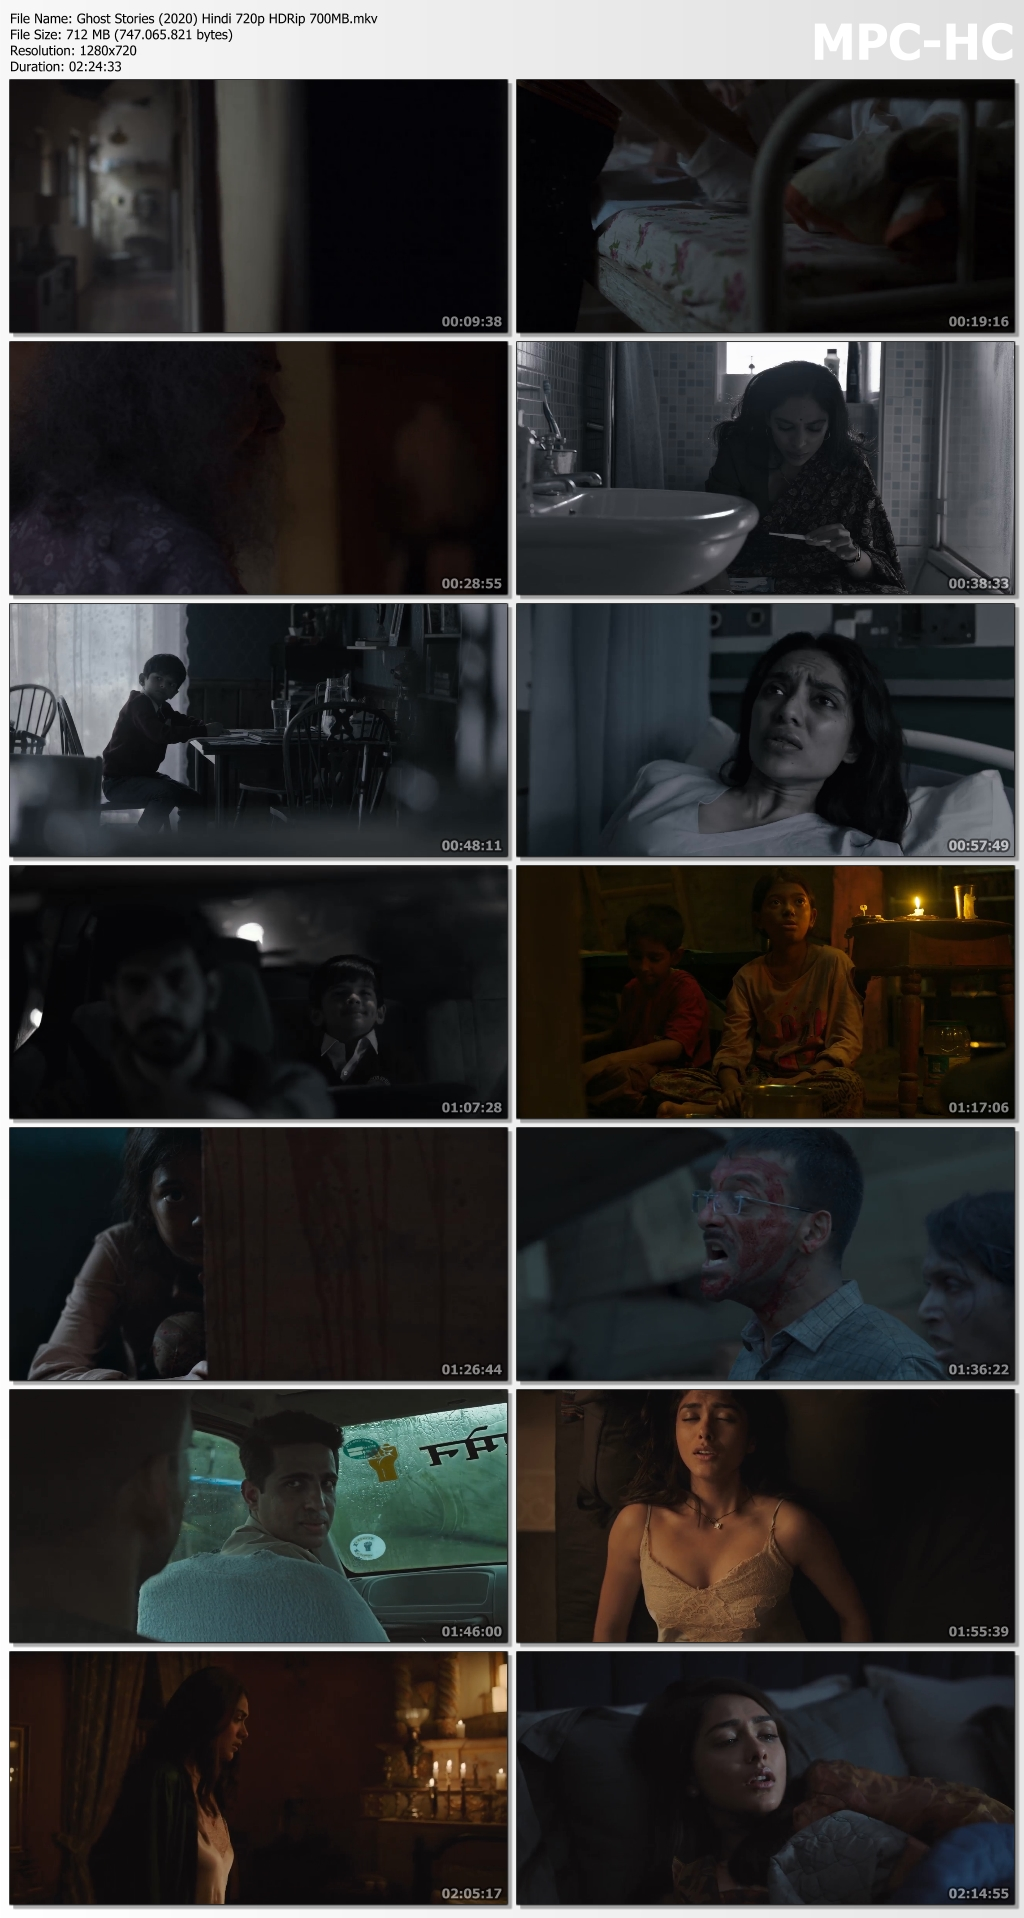 Ghost-Stories-2020-Hindi-720p-HDRip-700-MB-mkv-thumbs